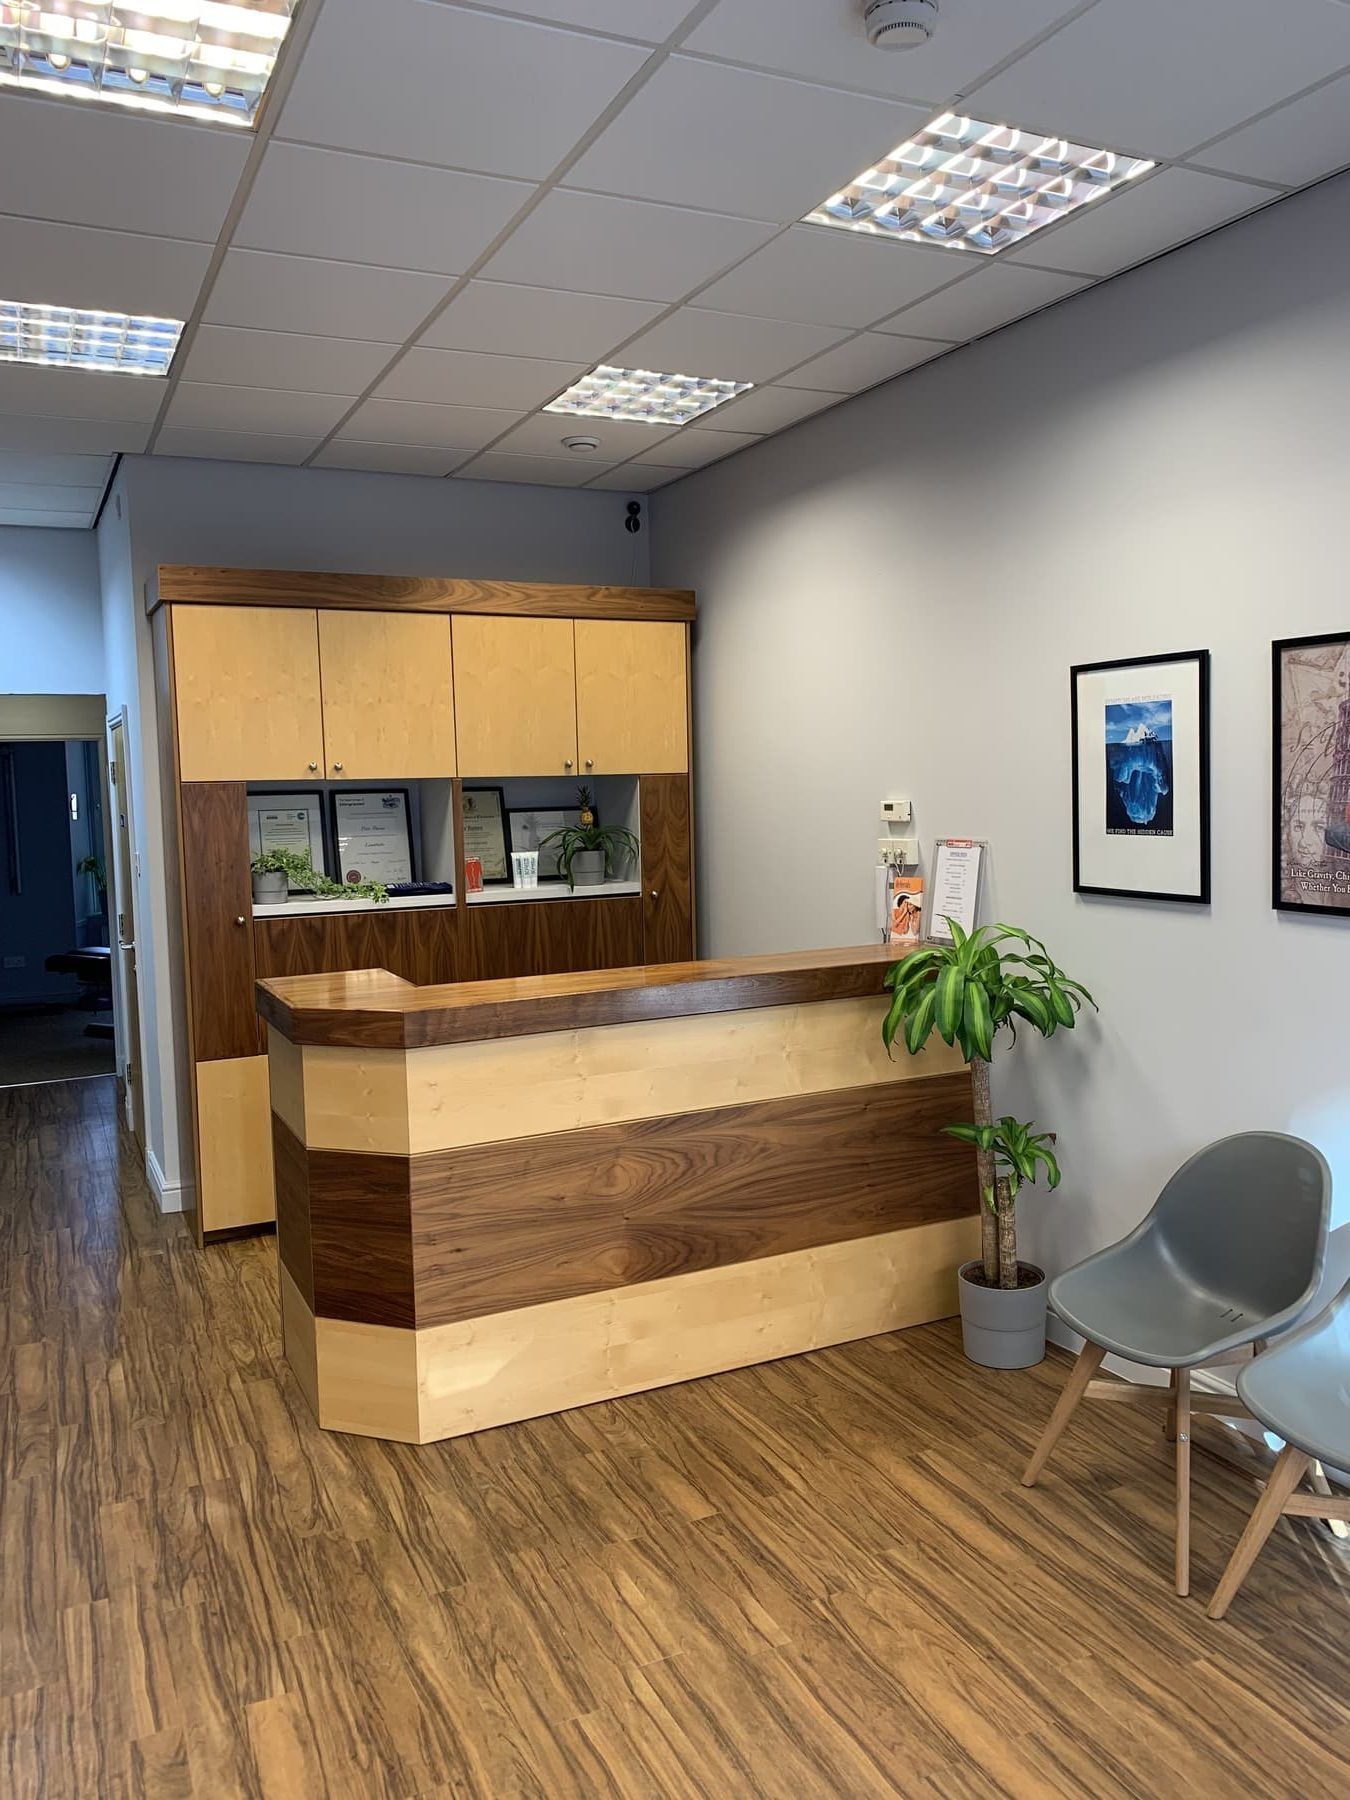 About us deluca chiropractic reception area